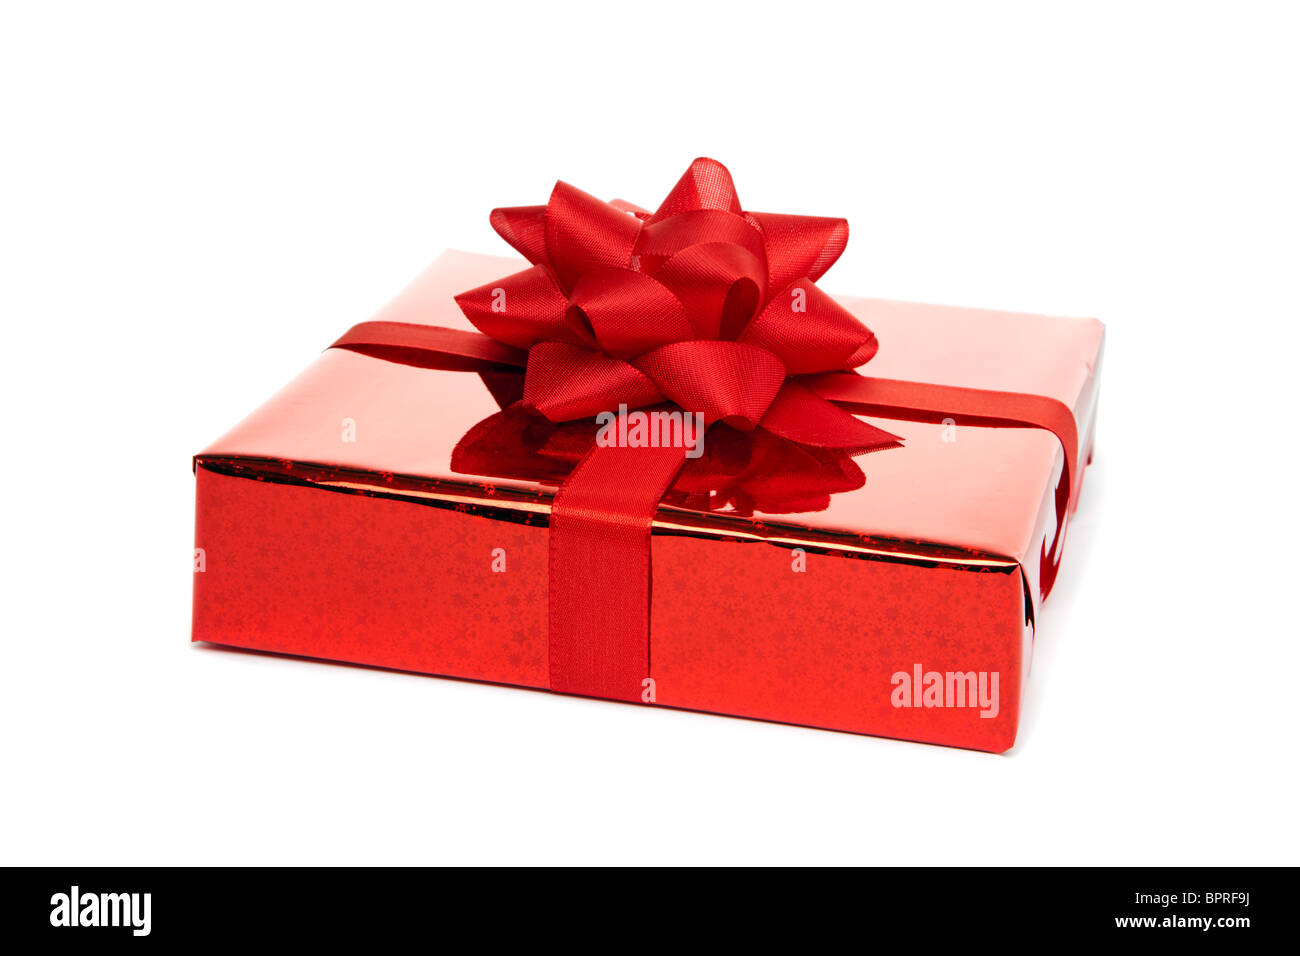 birthday or christmas gift wrapped in red foil and ribbon with large bow, isolated on  white background Stock Photo